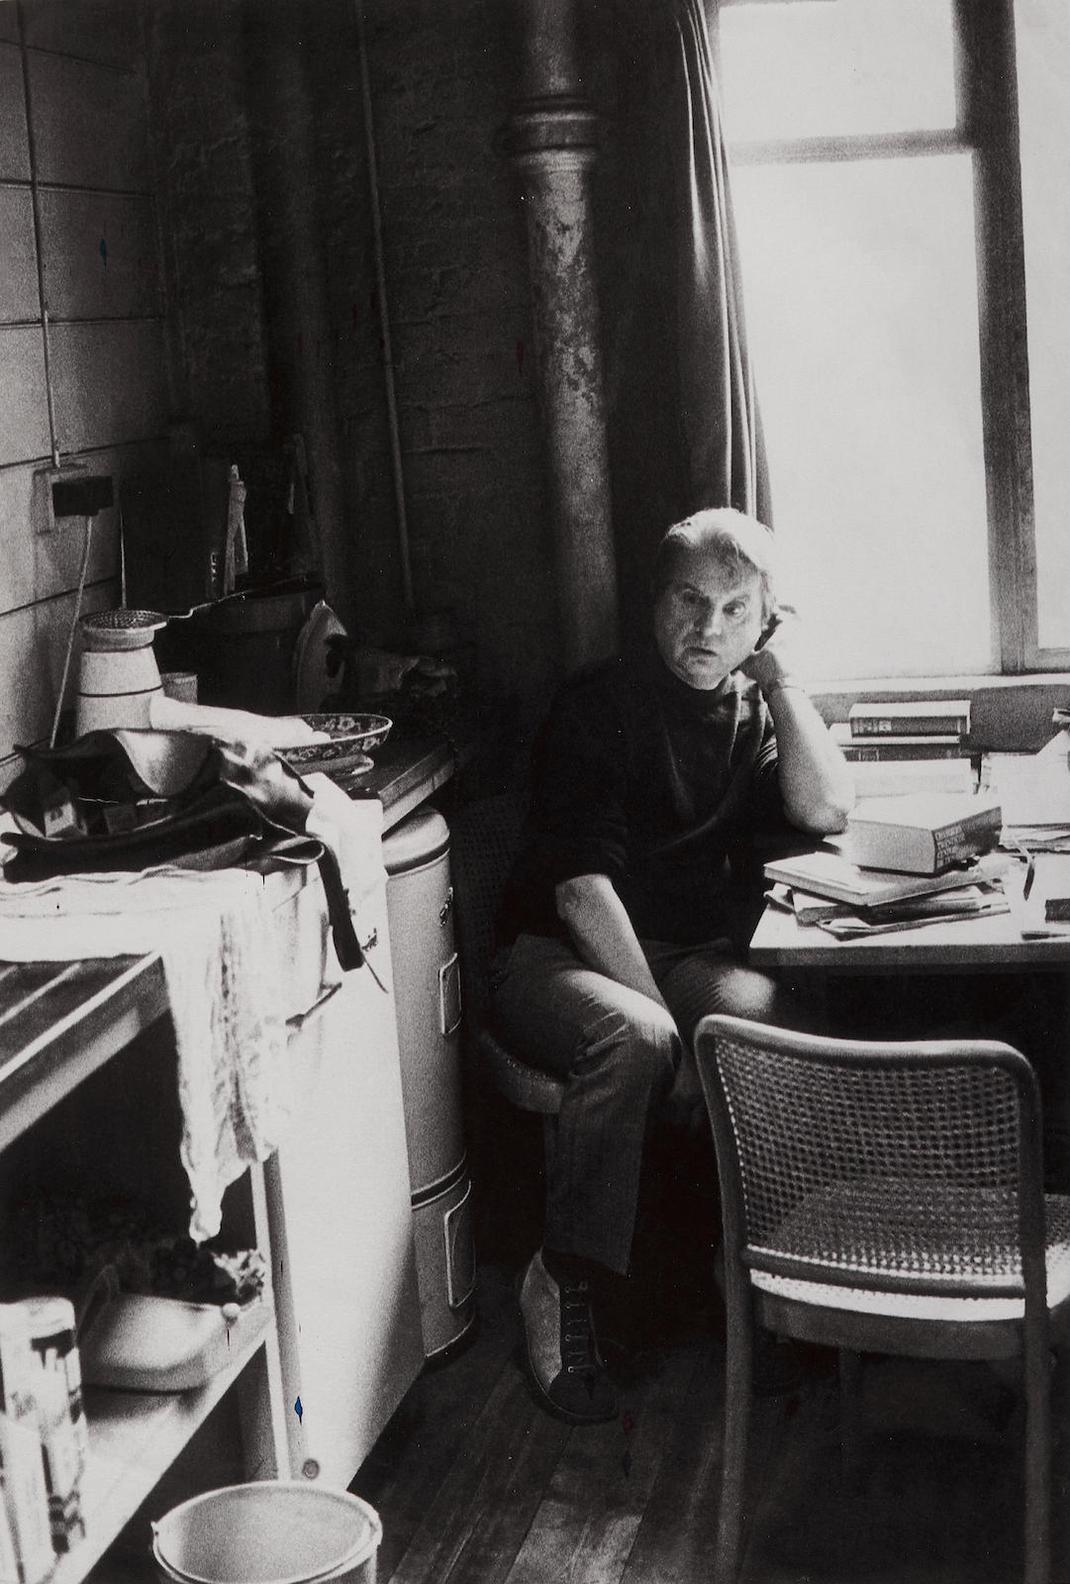 Peter Stark - Francis Bacon In His Studio And Francis Bacon Celebrating In The Colony Club (Muriel Belcher In The Background)-1973